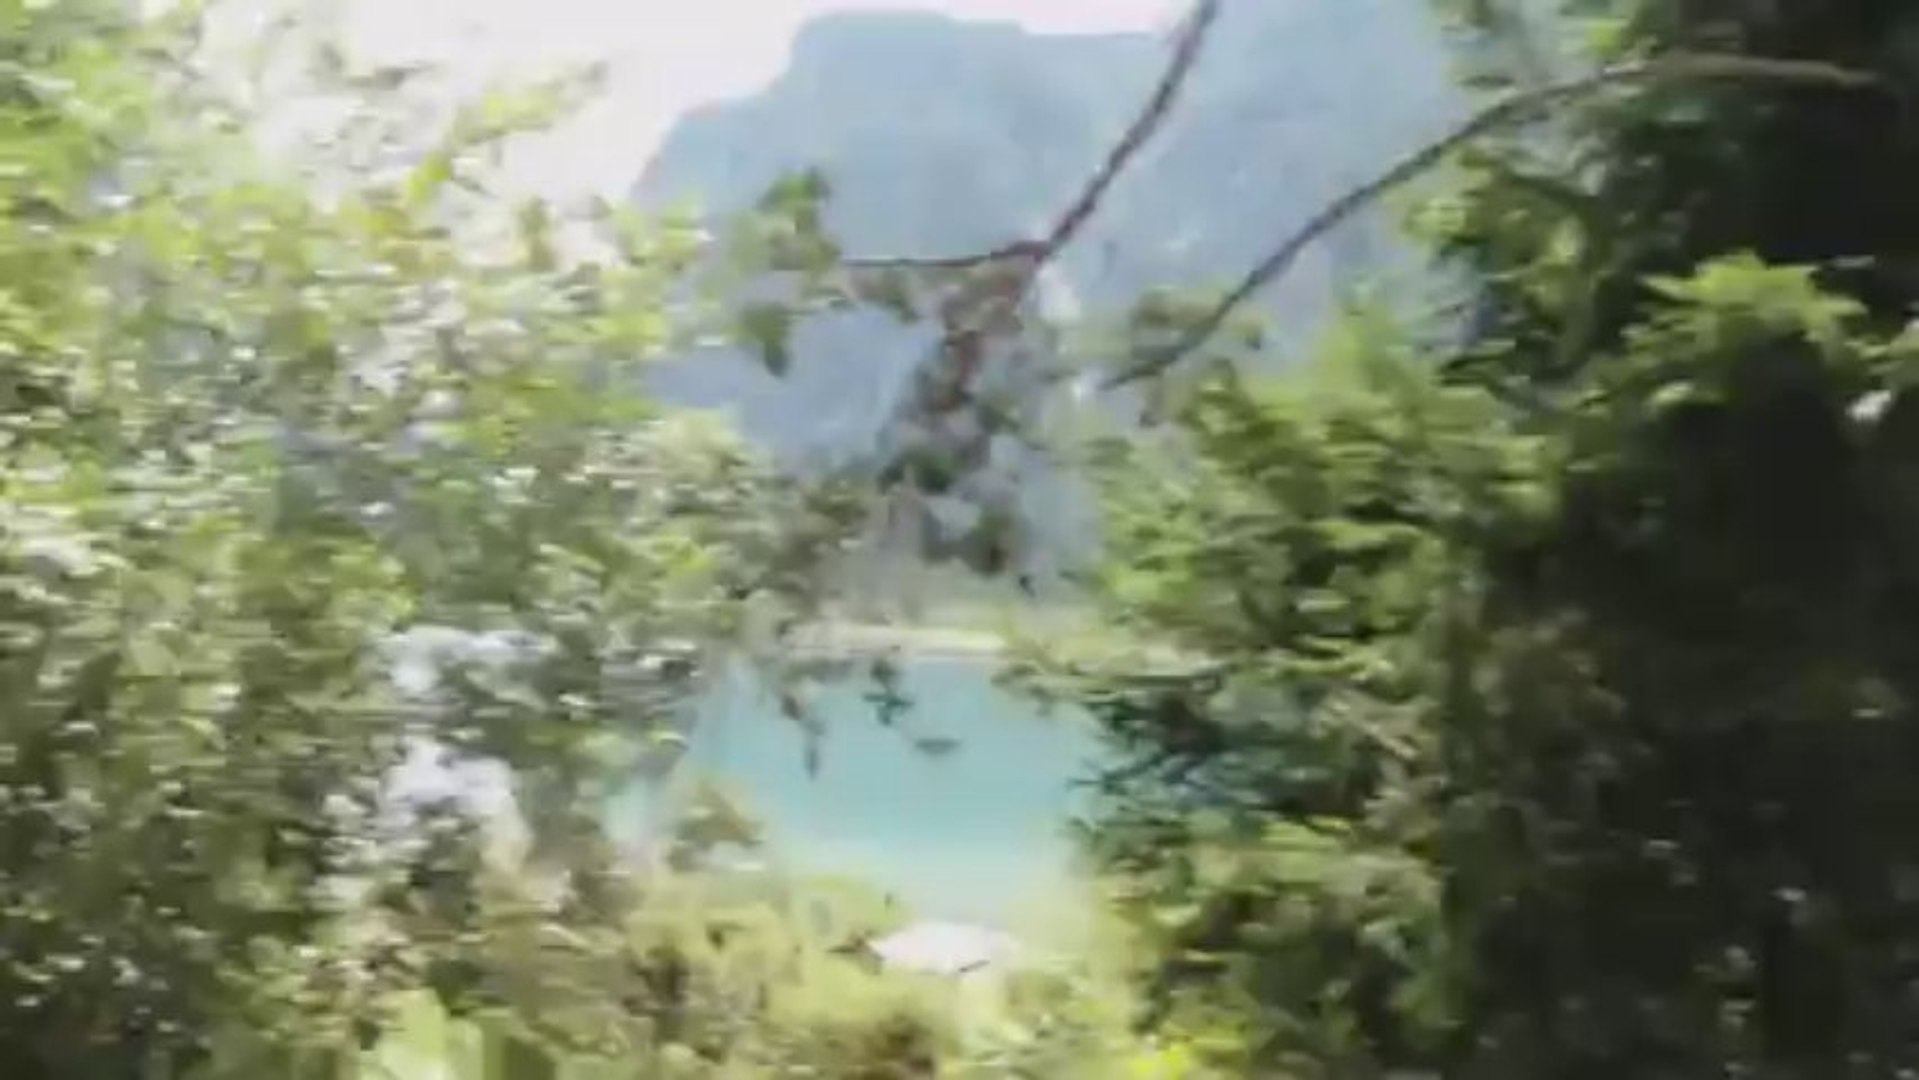 Bicycletour in Alps 2013. Dolomits /Austria-Italy/ FullHD 1080p